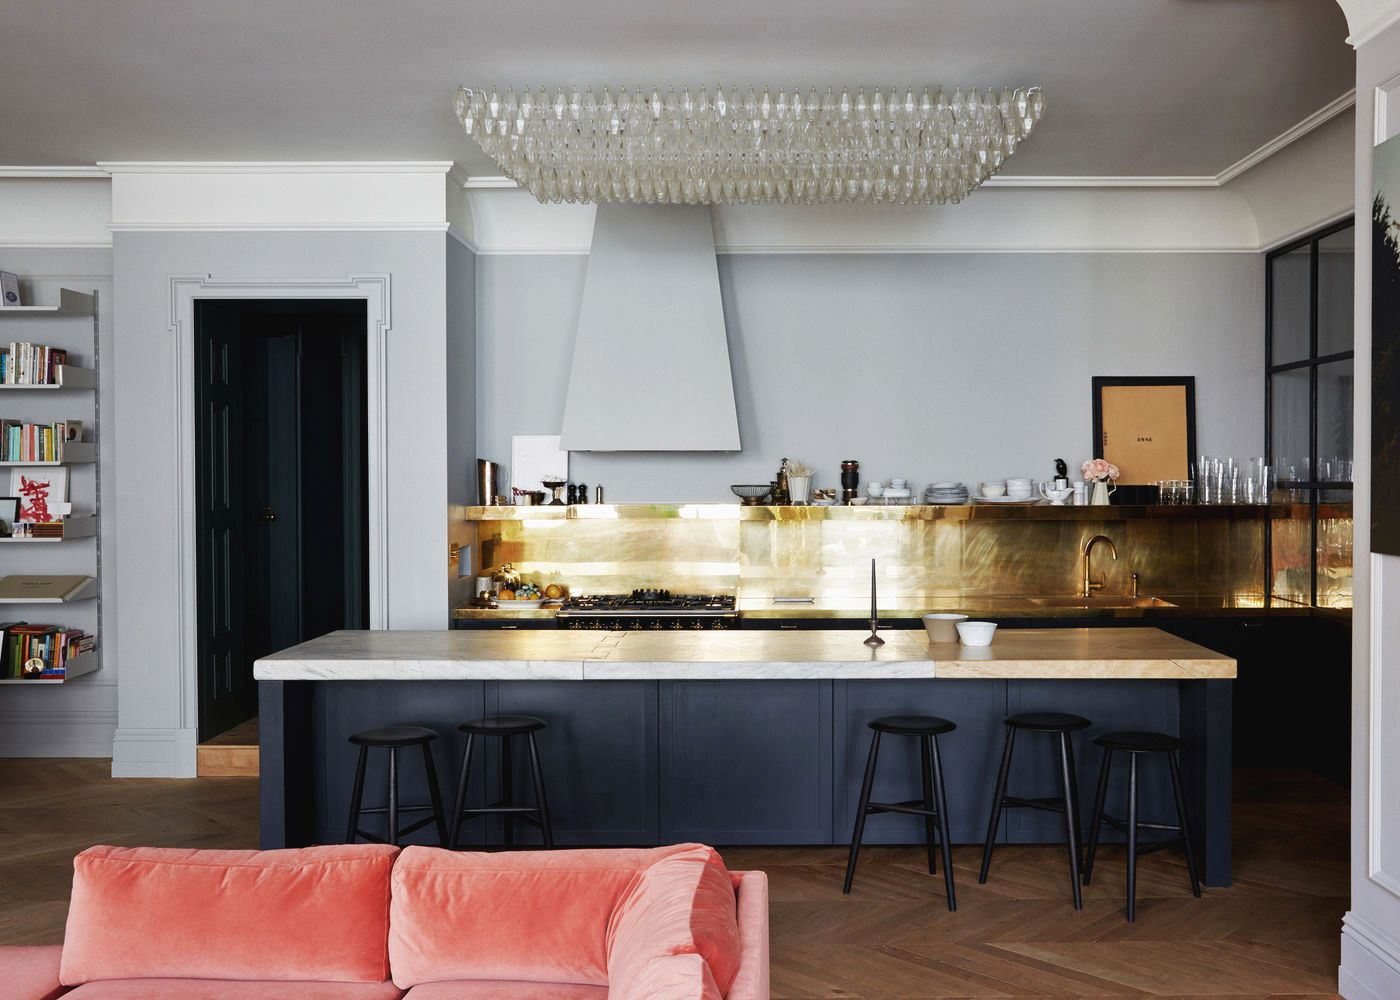 Brass Backsplash And Charcoal Cabinets With A Dramatic Chandelier In The  Kitchen | Jenna Lyons House Tour On Coco Kelley